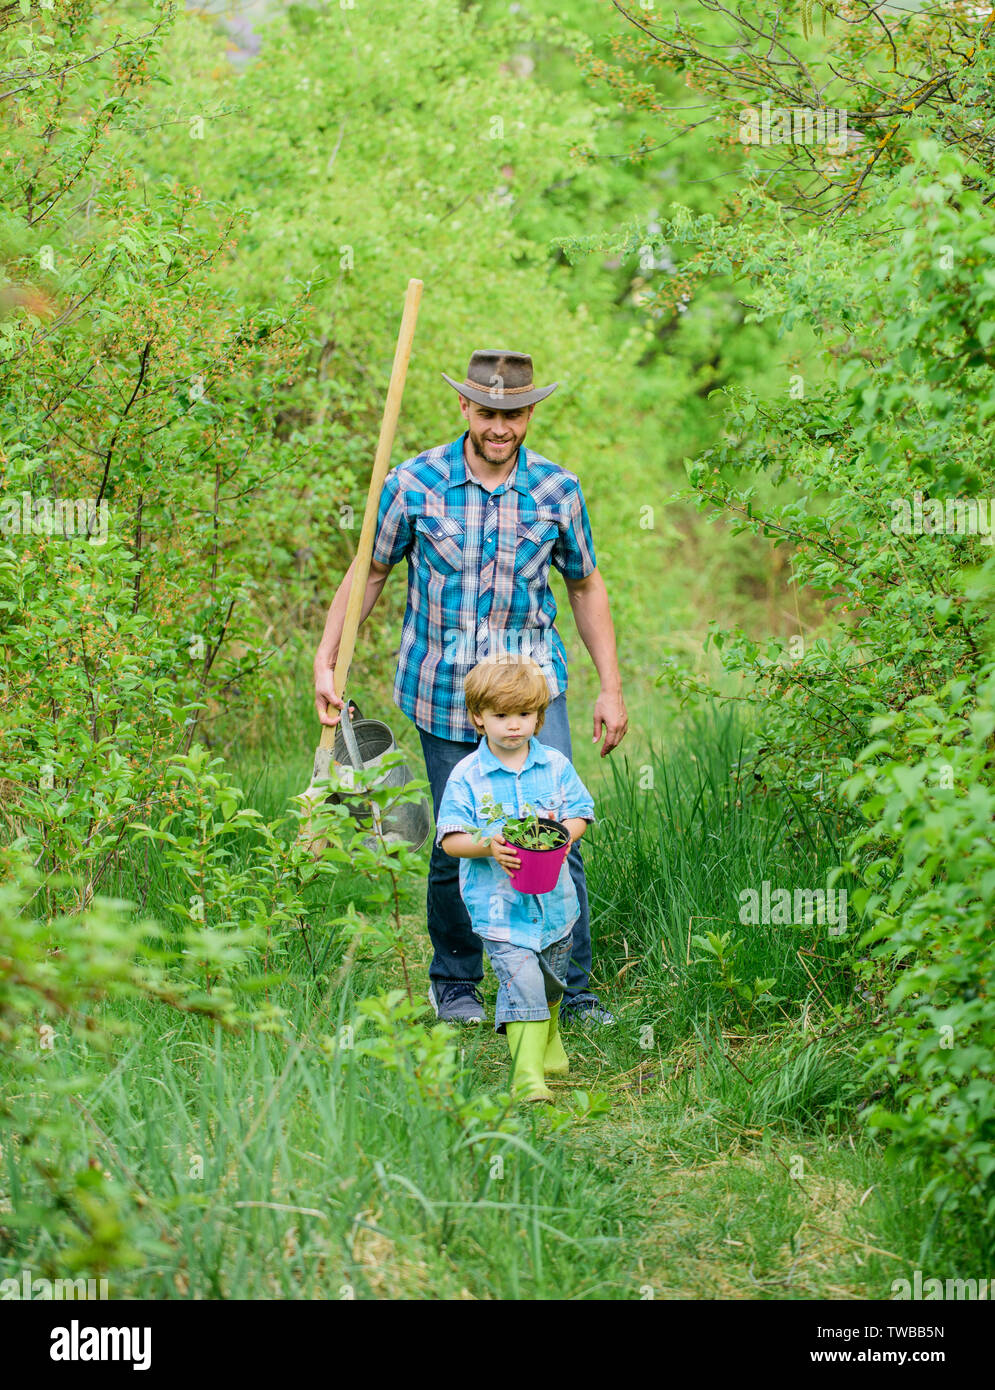 Little helper in garden. Planting flowers. Growing plants. Boy and father in nature with watering can and shovel. Dad teaching son care plants. Arbor day. Planting trees. Tree planting tradition. Stock Photo